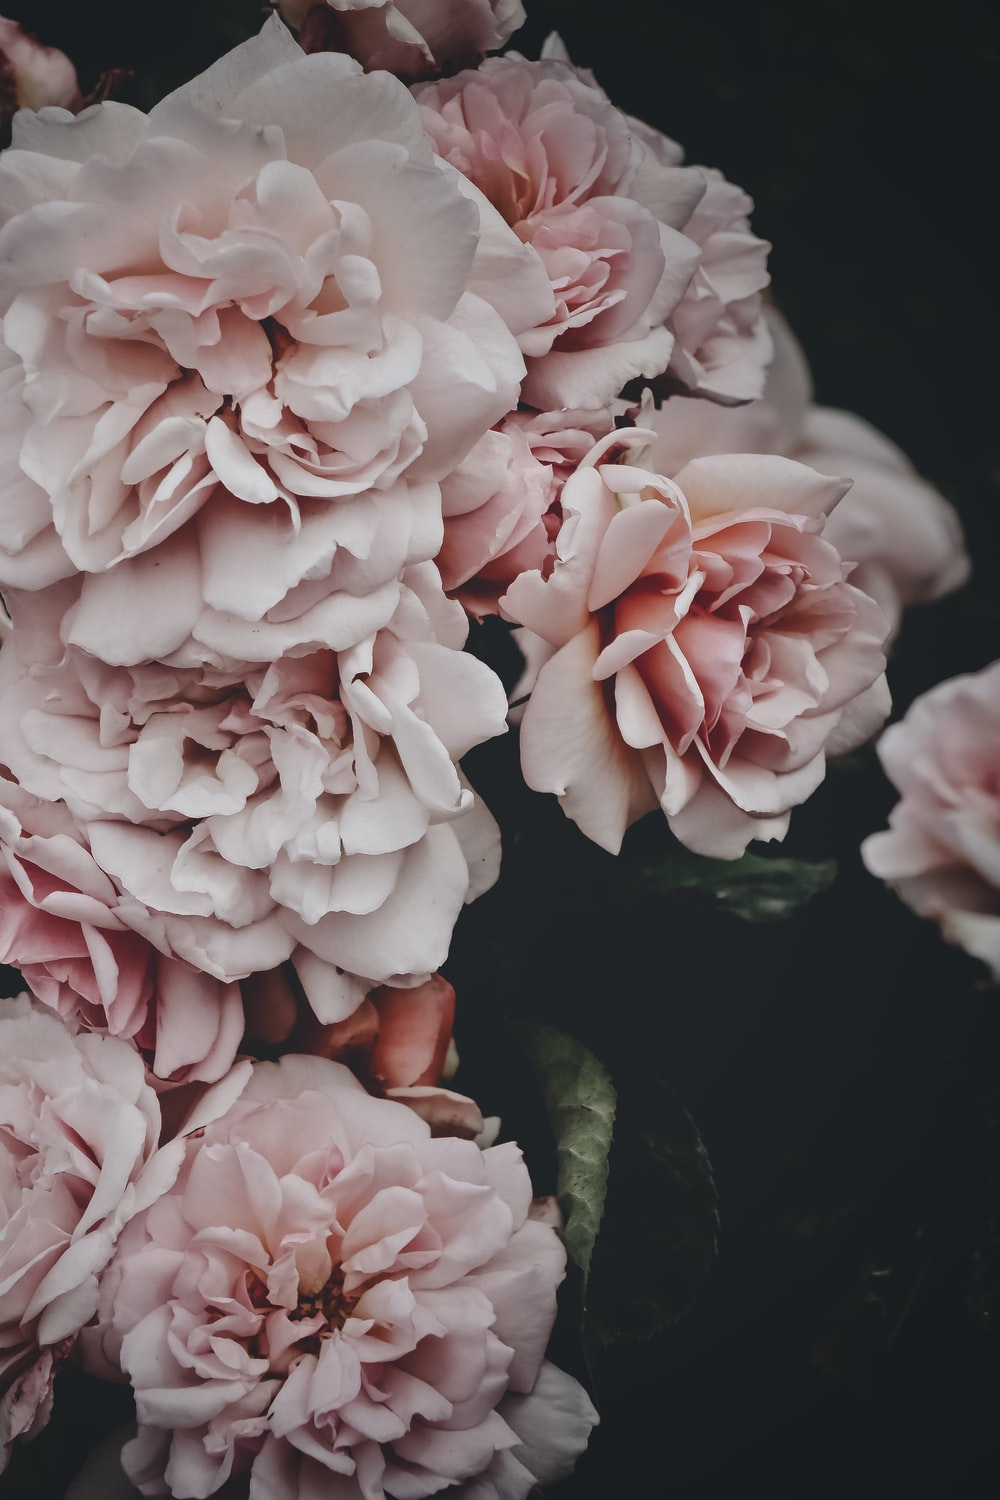 500 Peony Pictures Hd Download Free Images Stock Photos On Unsplash